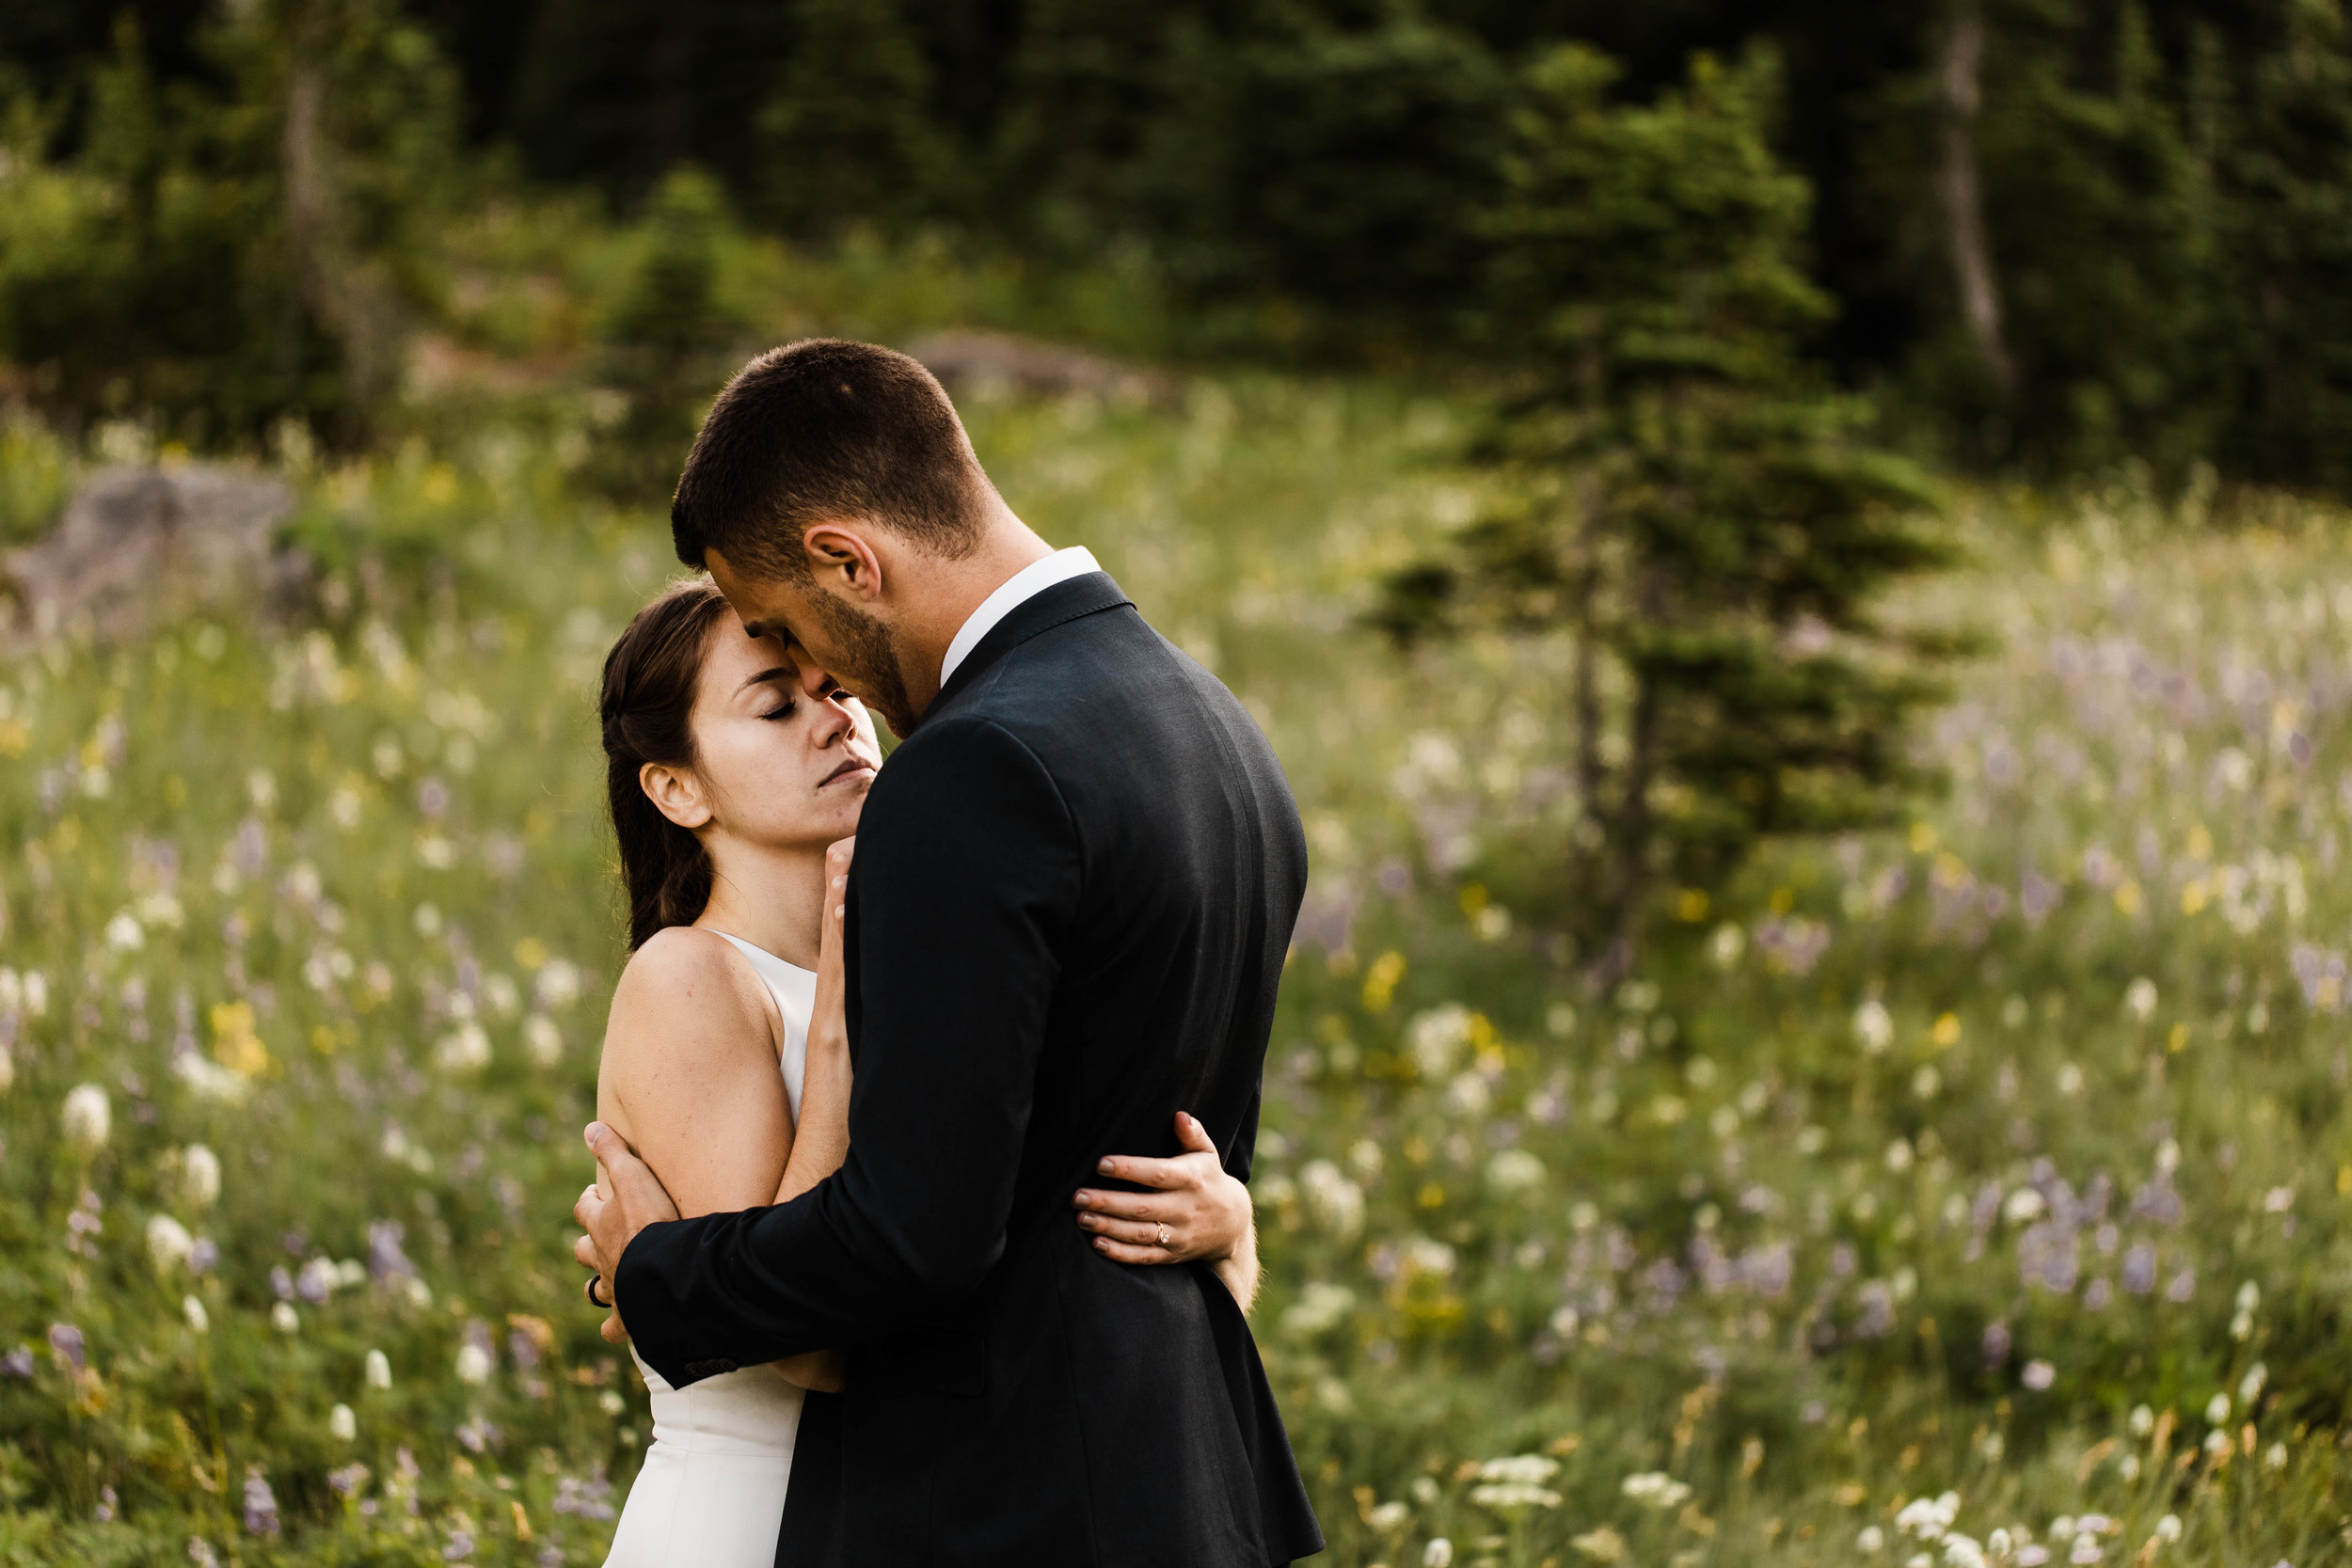 alpine meadow elopement photos in Mount Rainier | national park adventure elopement photographers in Washington state